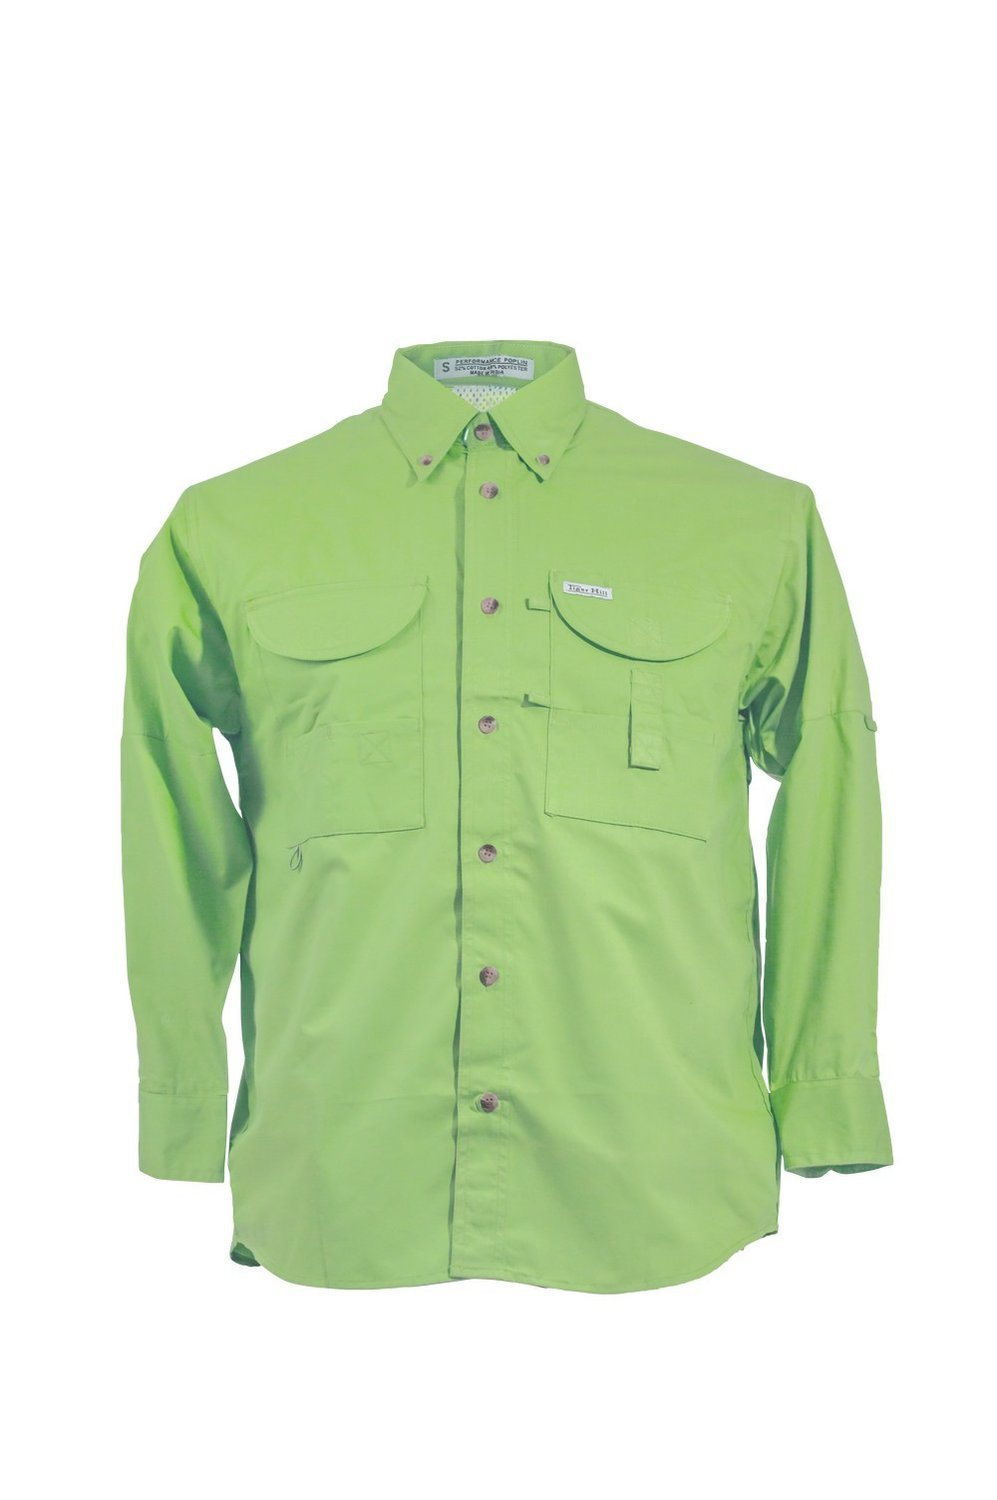 Tiger Hill Men's Fishing Shirt Long Sleeves Lime Green